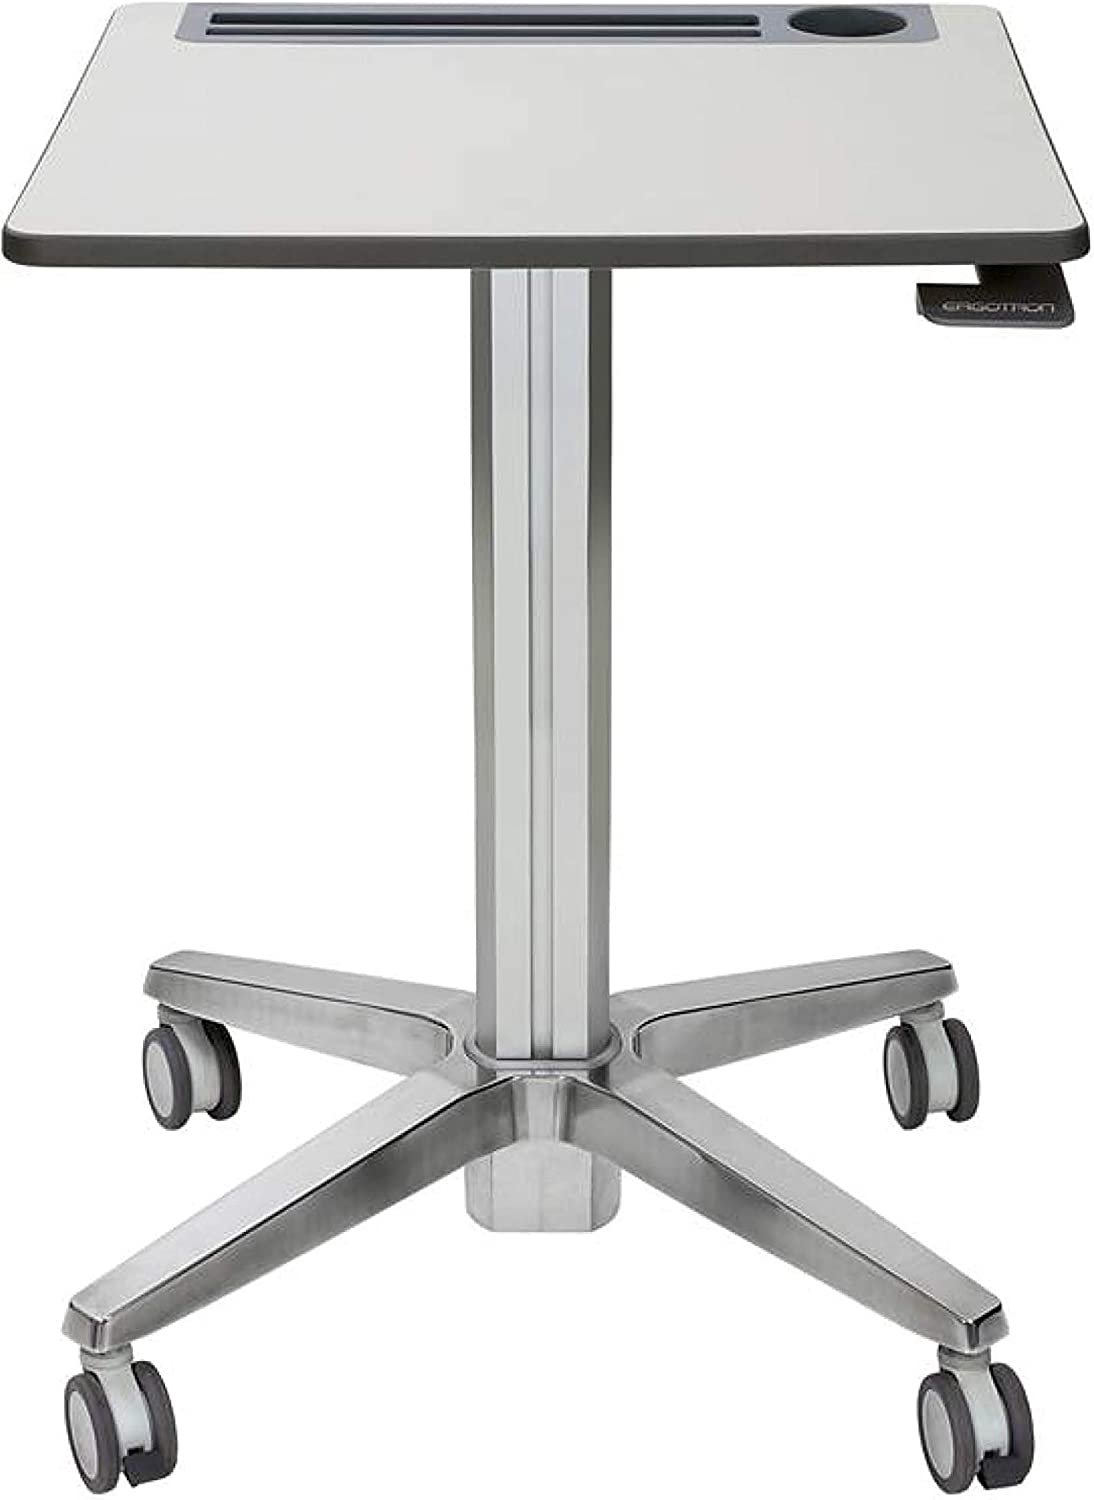 Ergotron – LearnFit Sit-Stand Desk, Tall – Mobile Desk, Grey and Silver